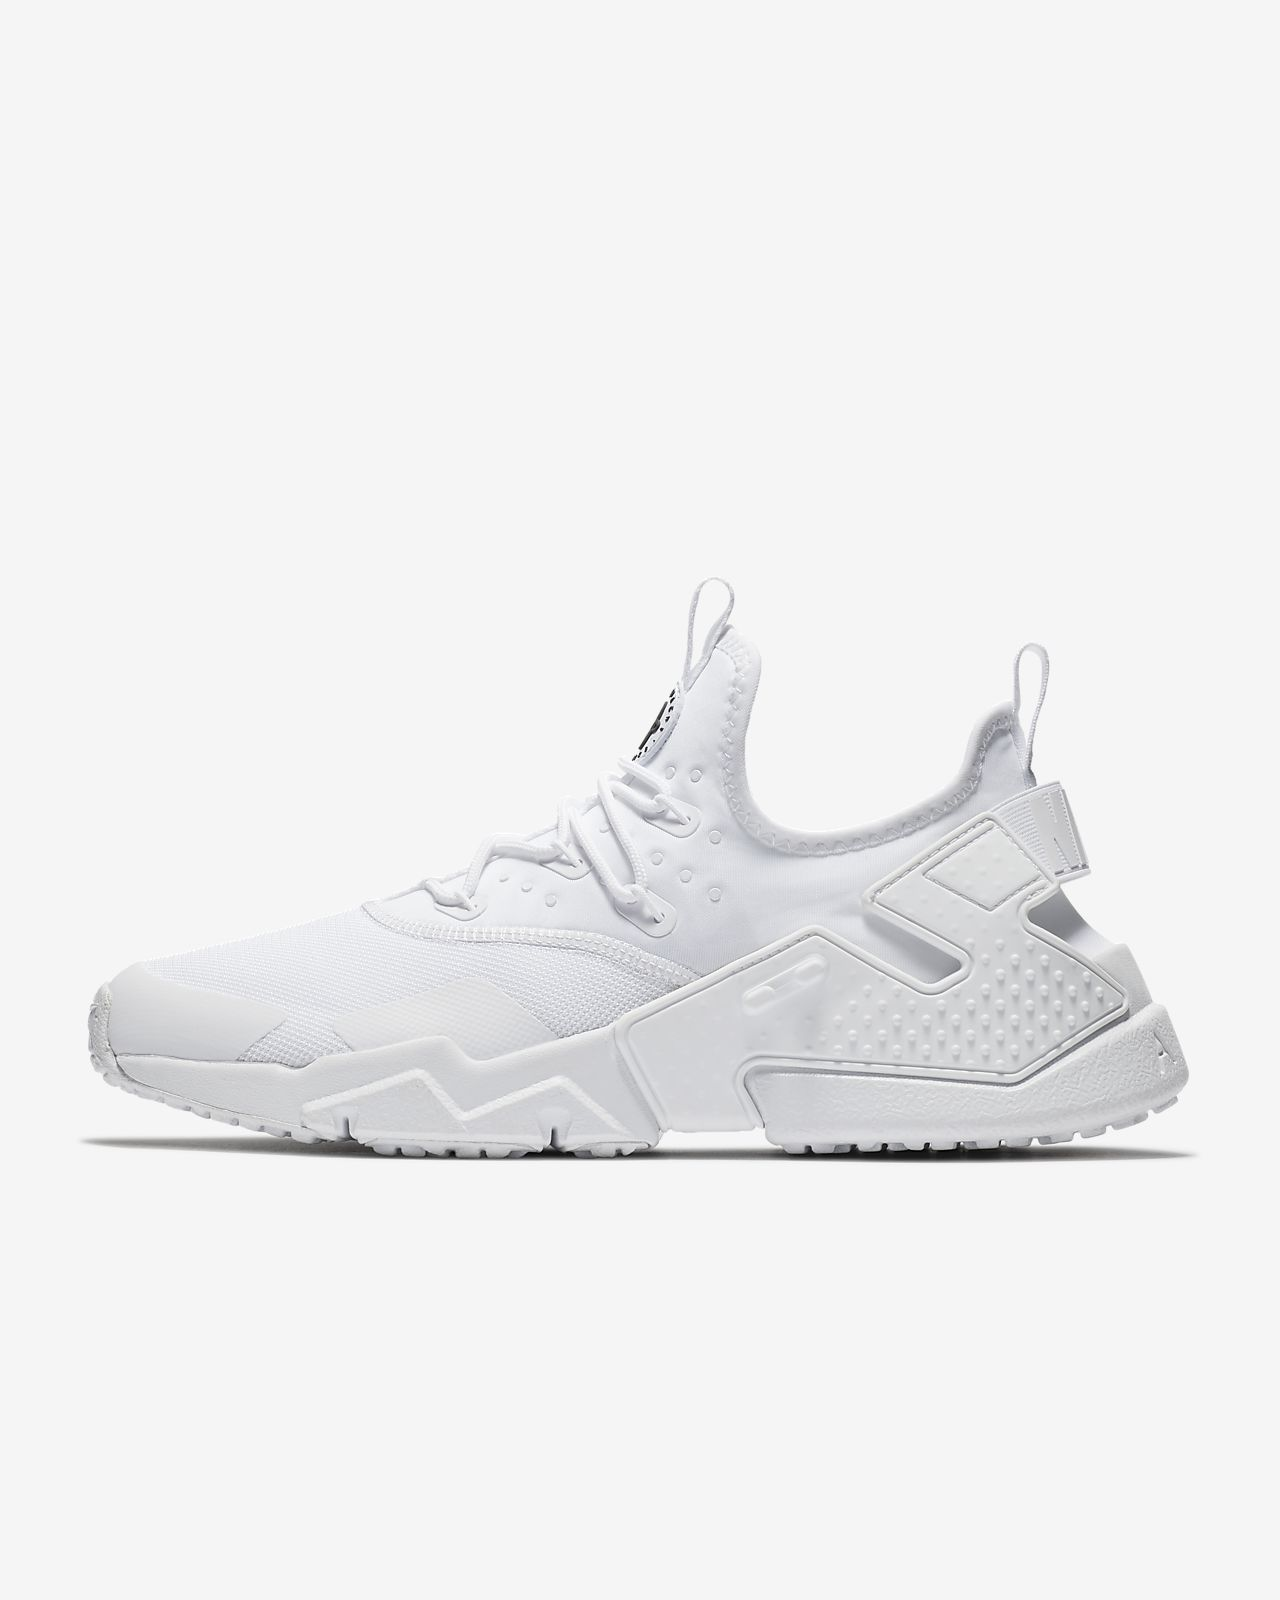 81e54dec1b78d4 Nike Air Huarache Drift Men s Shoe. Nike.com